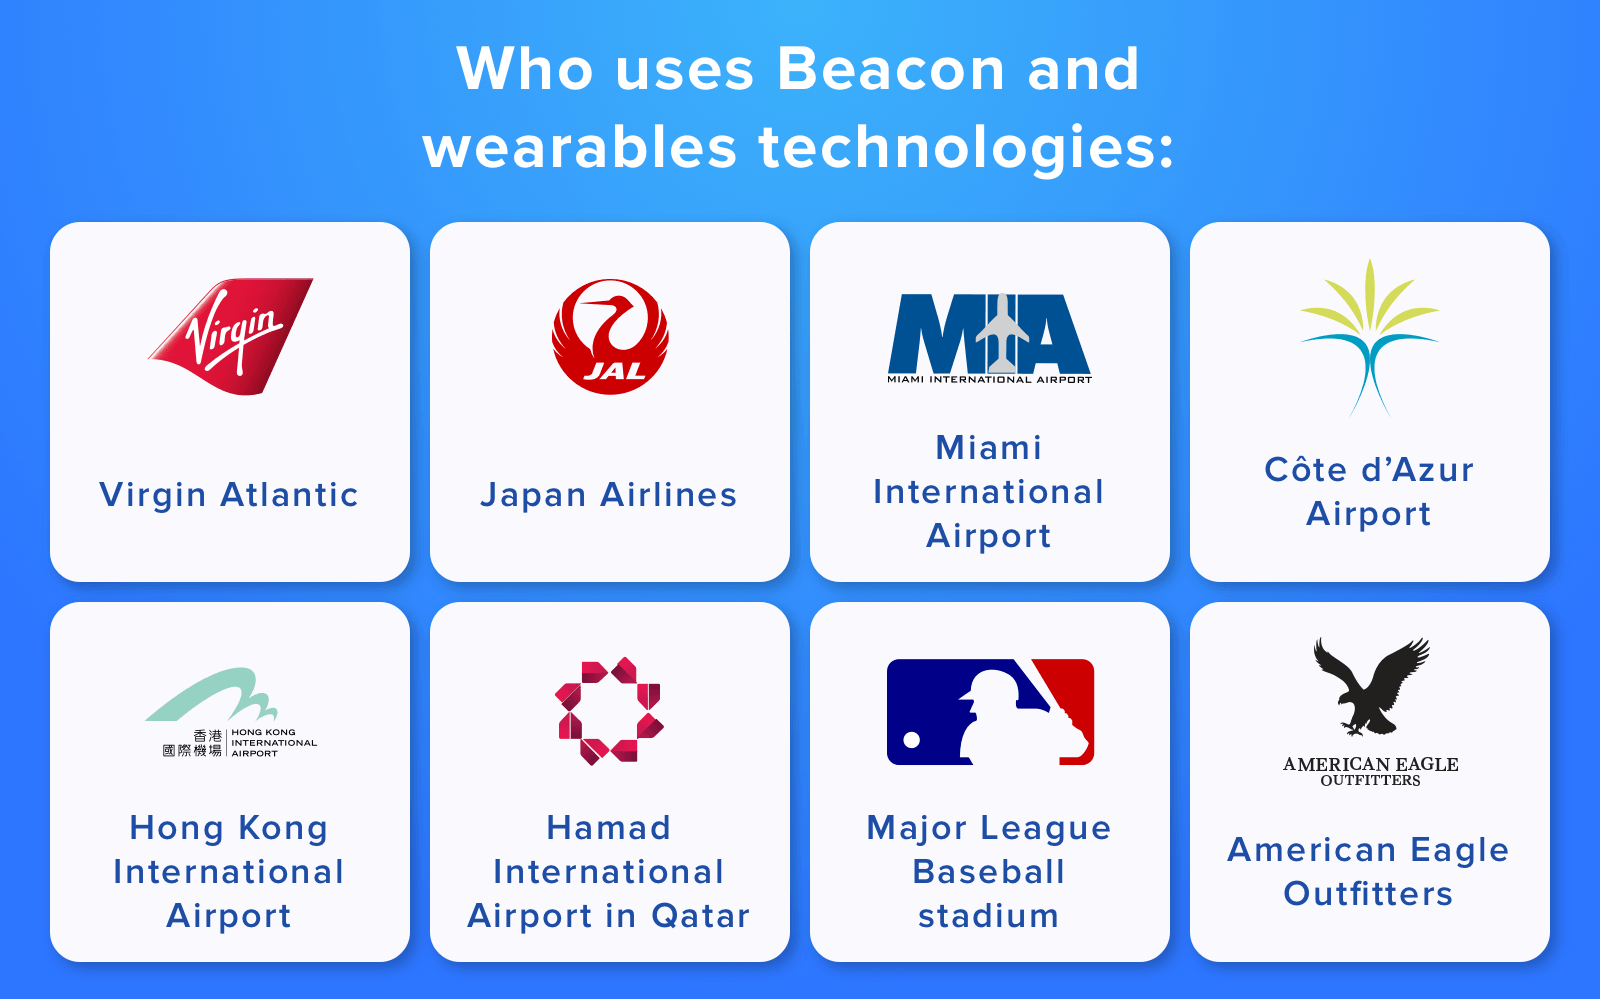 beacon technology uses